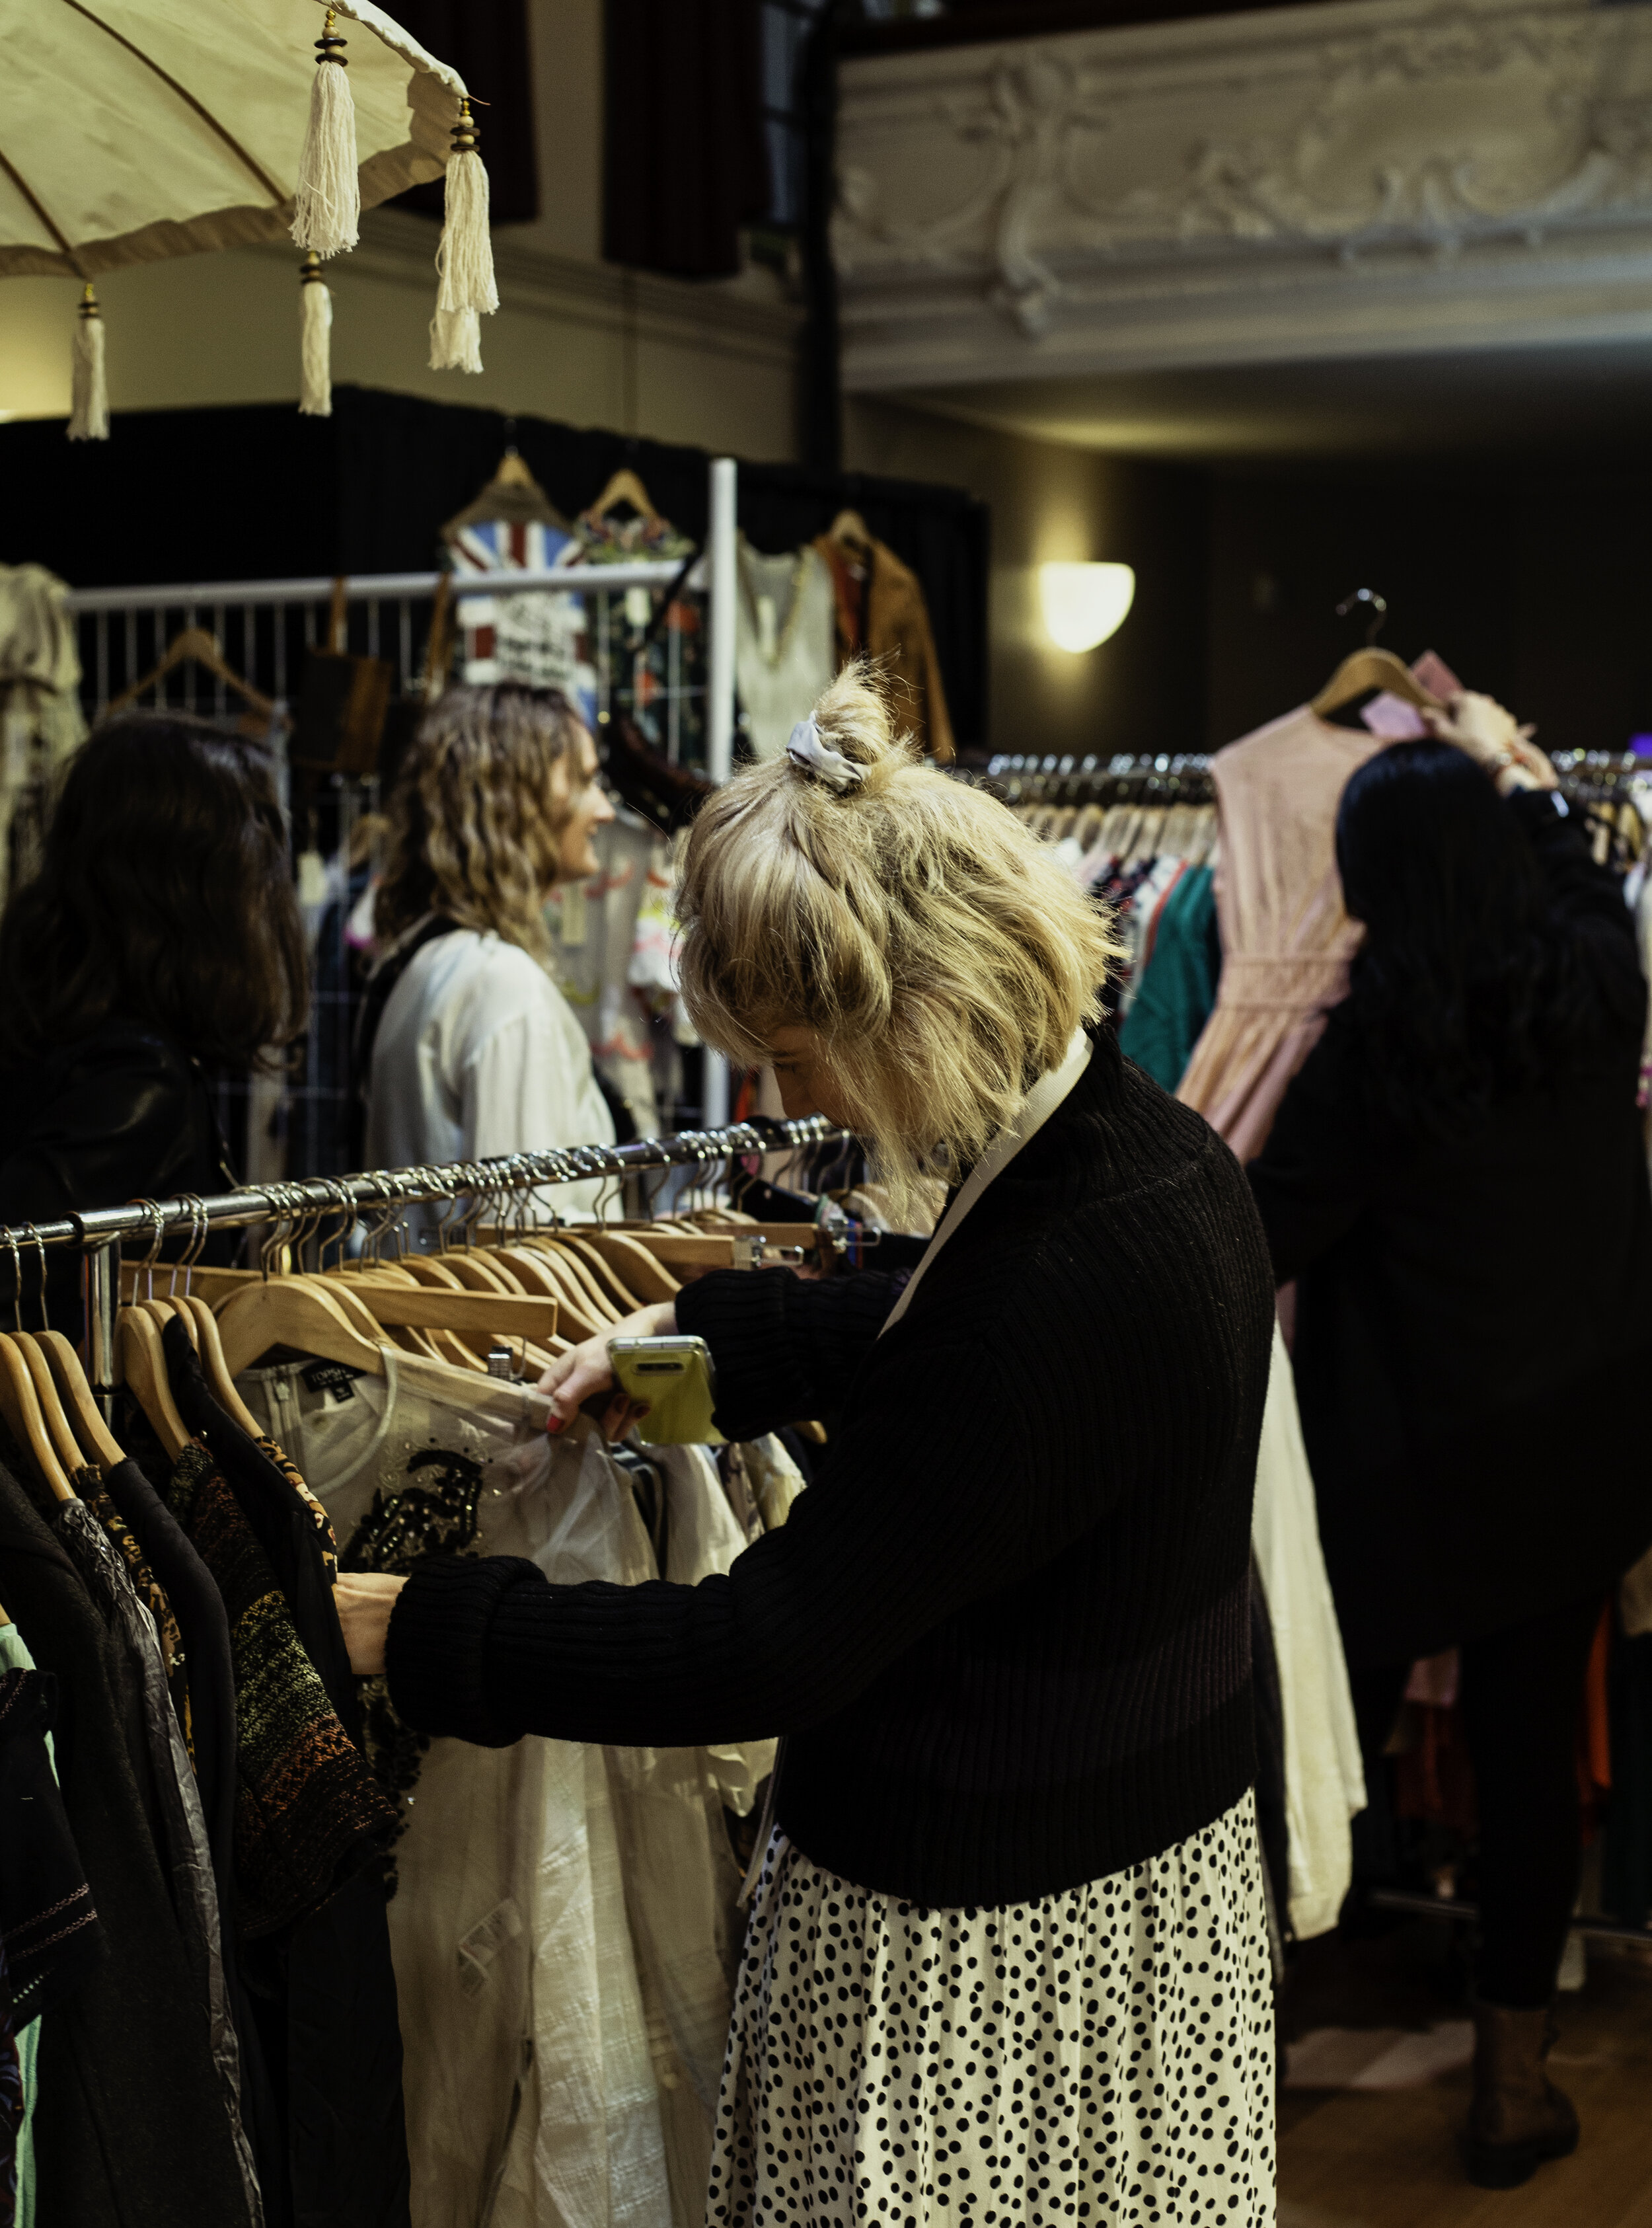 BrookeWaterson_Other_PopUpSale8_2019PhotoComp.jpg